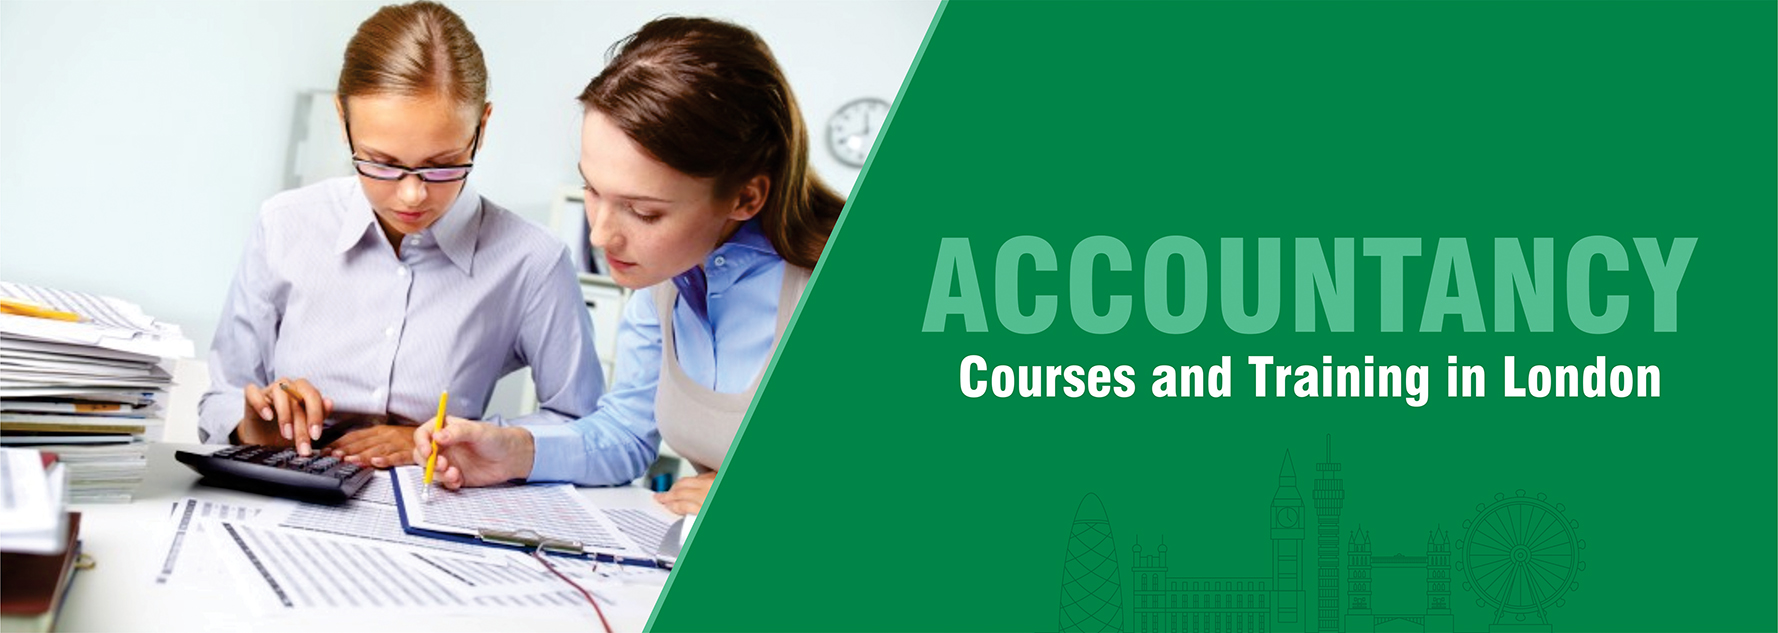 accountancy-courses